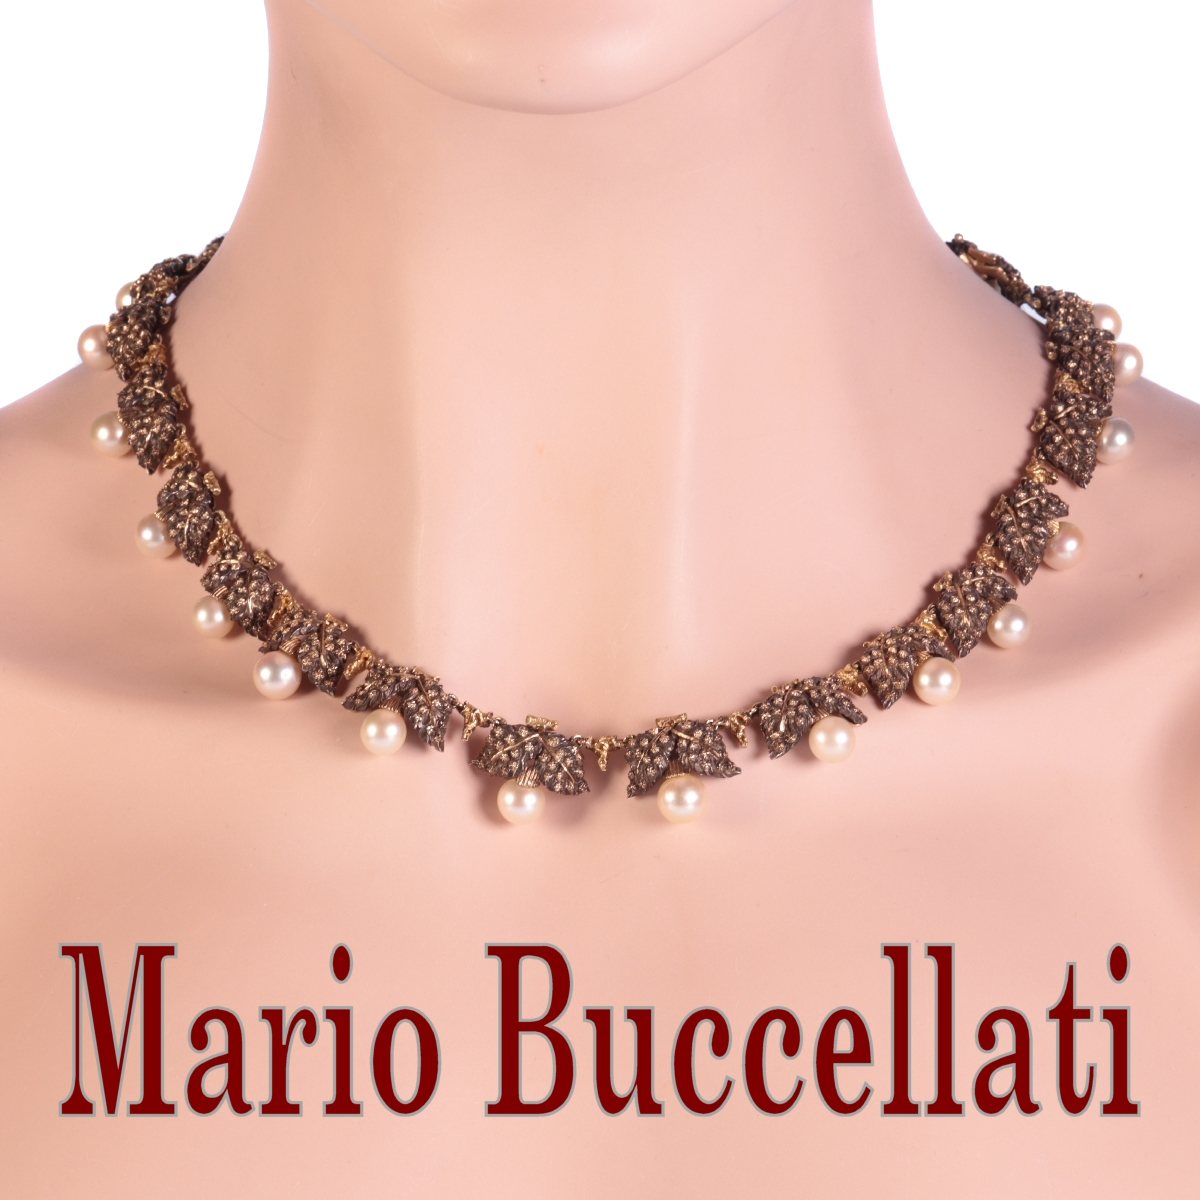 Mario Buccellati Vintage Fifties gold and silver pearl neck jewel necklace with grape leaf motive